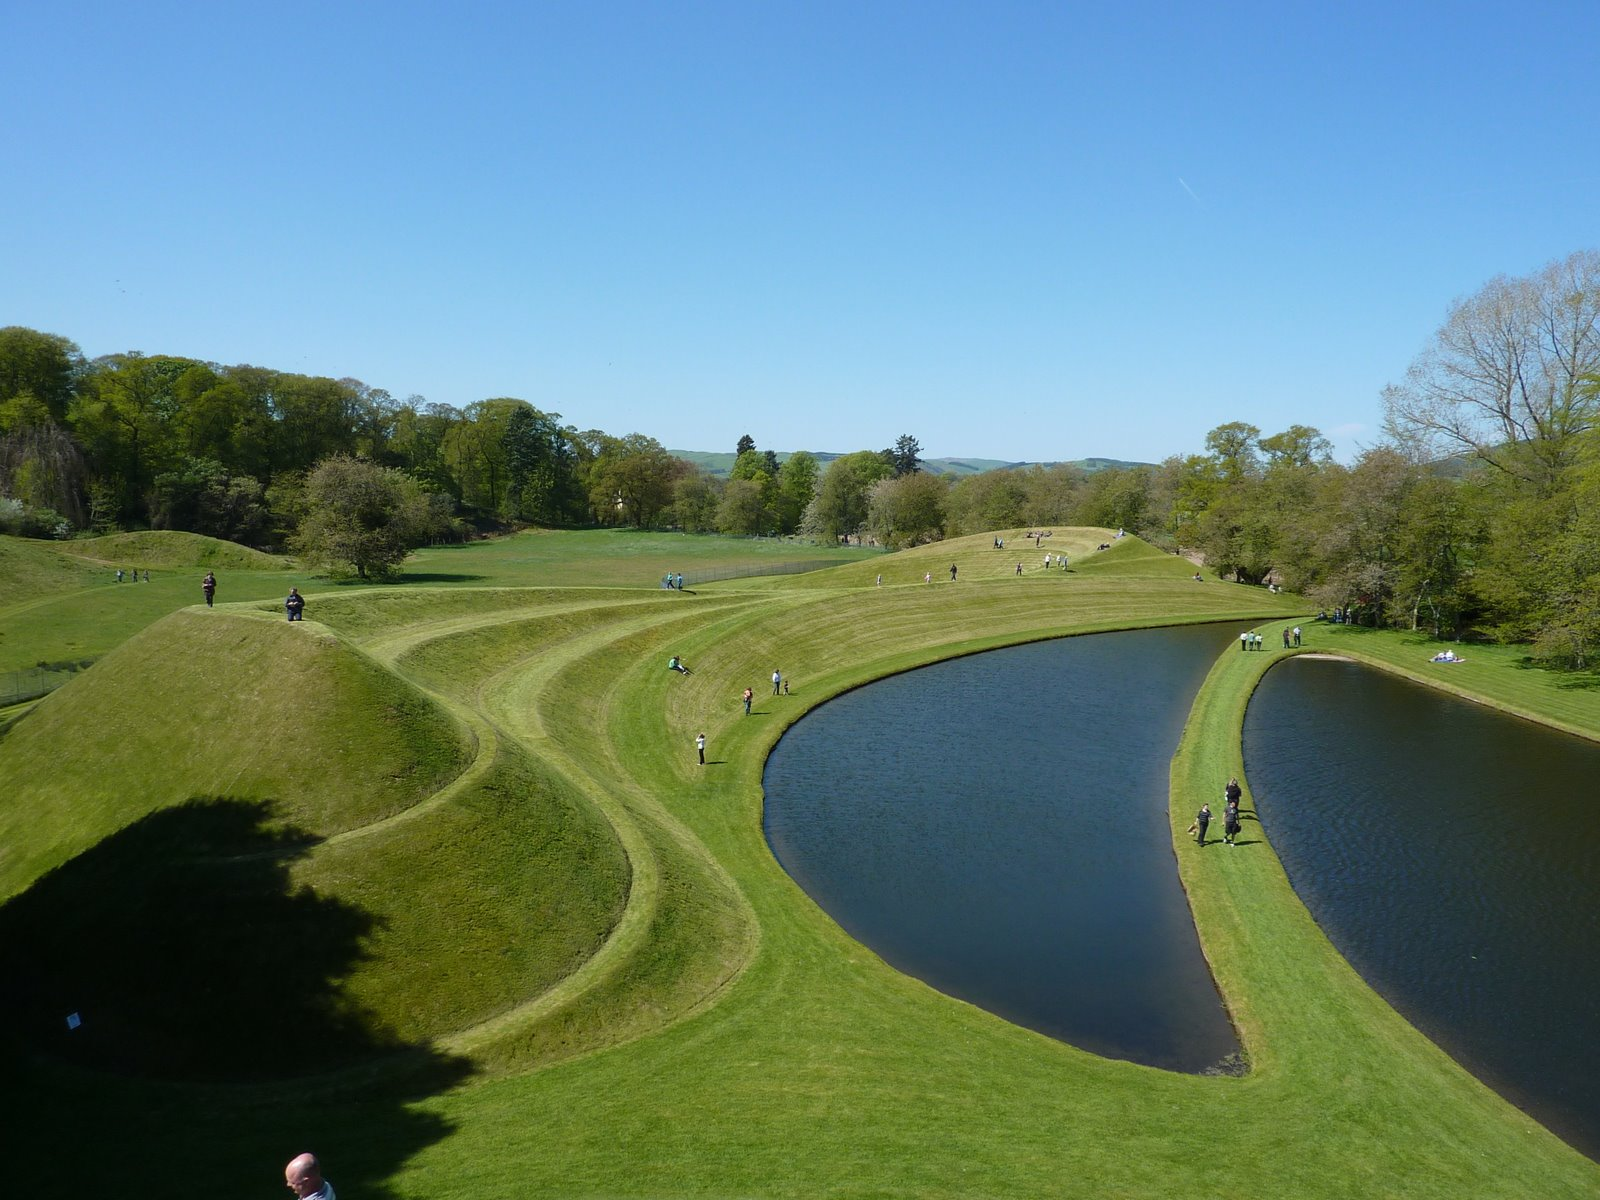 The garden of cosmic speculation by charles jencks for Terrace landform